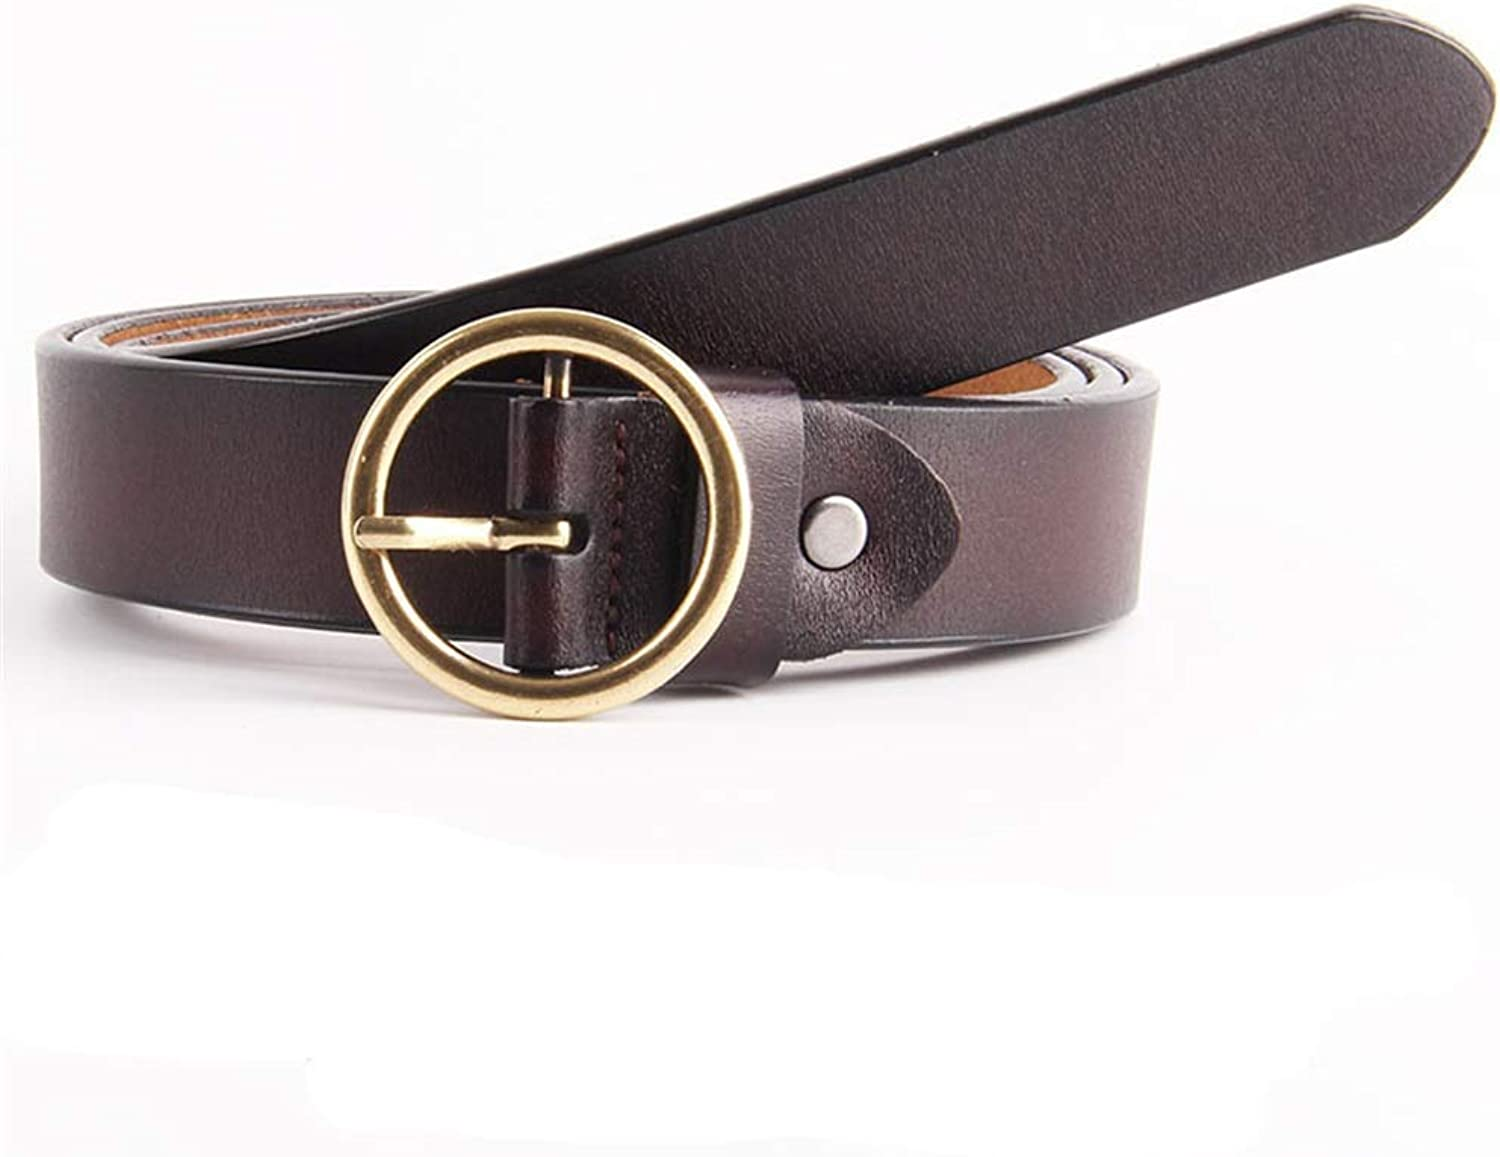 Round Buckle Women Leather Belt Adjustable Skinny Waist Belt for Jeans Pants Dresses Plus Size (color   Coffee color)